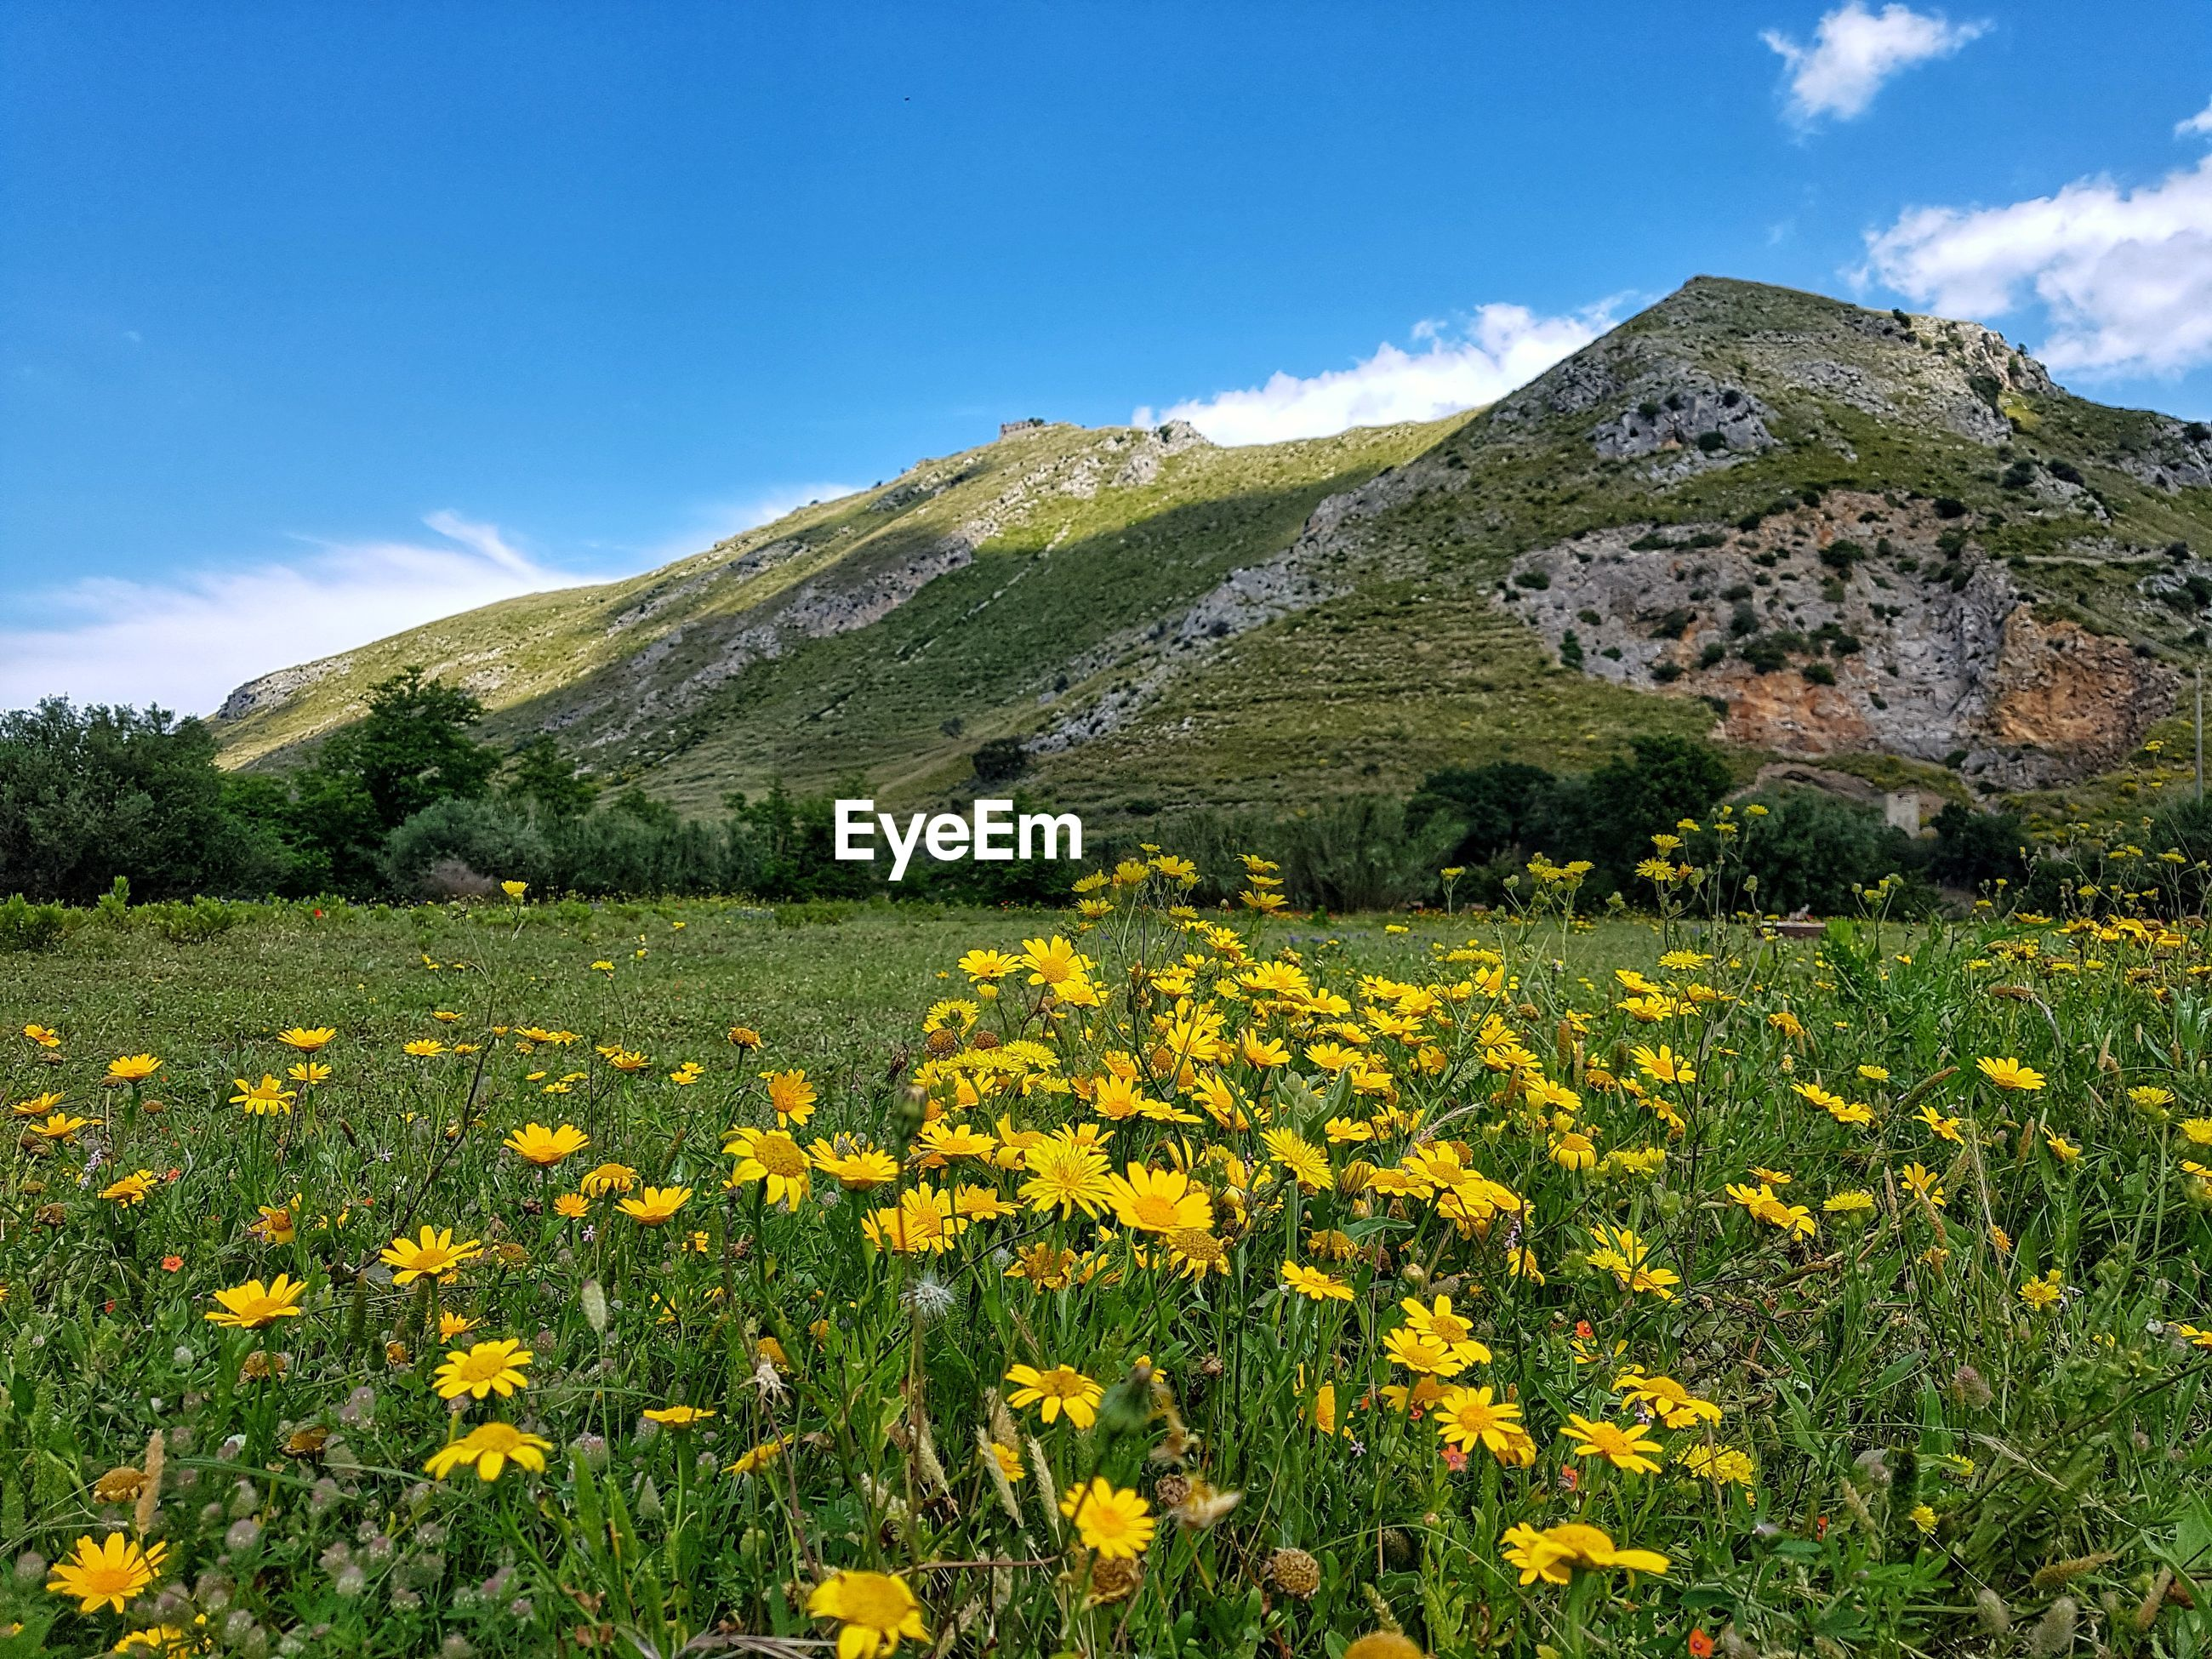 YELLOW FLOWERING PLANTS ON FIELD AGAINST MOUNTAIN